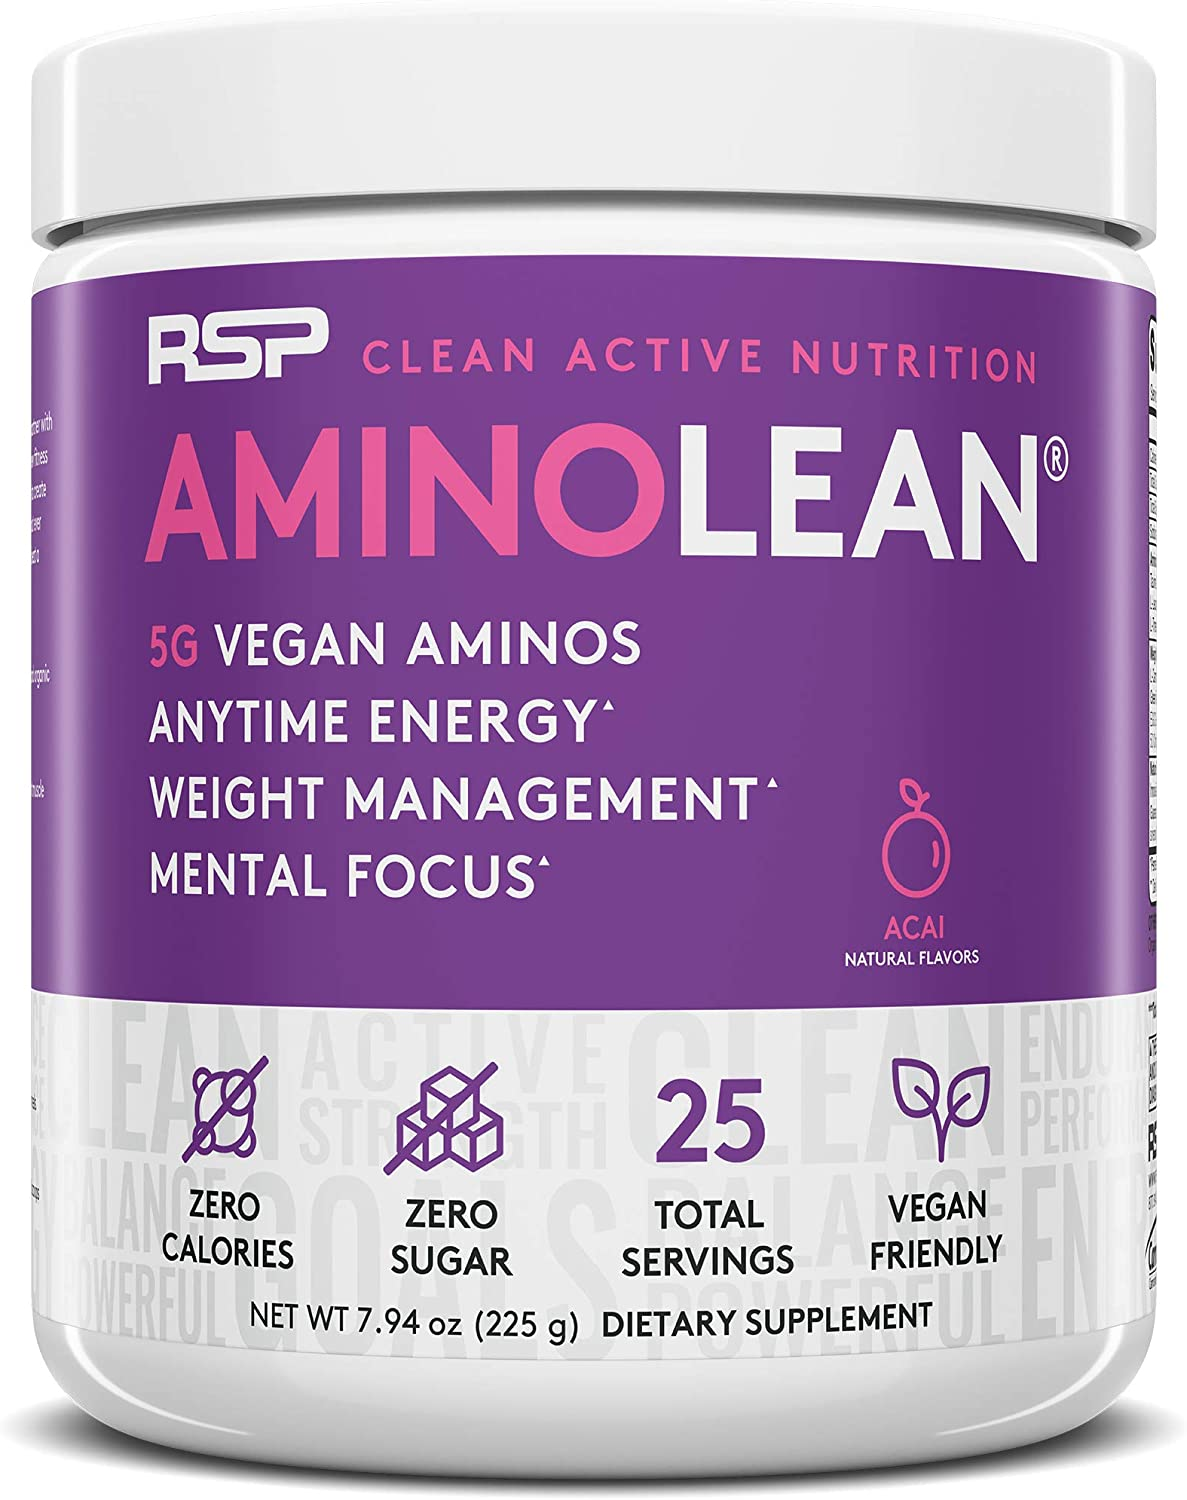 RSP Vegan AminoLean - All Natural Preworkout with Vegan BCAAs, All-In-One Amino Energy, Weight Management, Recovery, and Focus, 25 Serv, Acai: Health & Personal Care